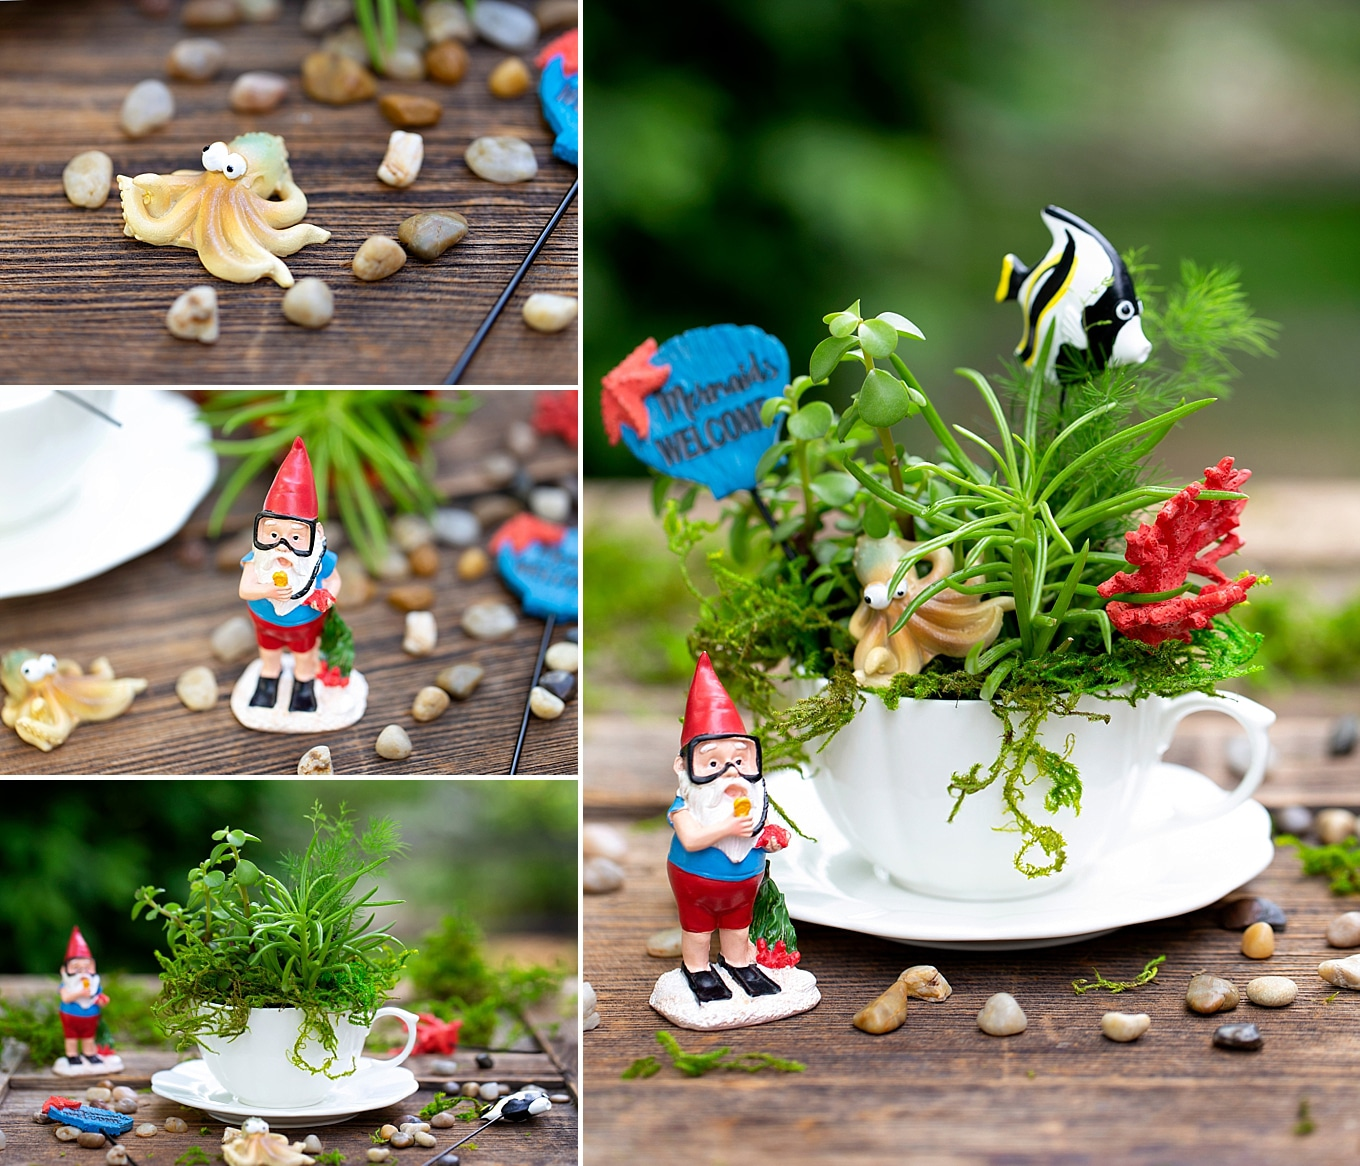 Collage Photo of Under the Sea Teacup Garden